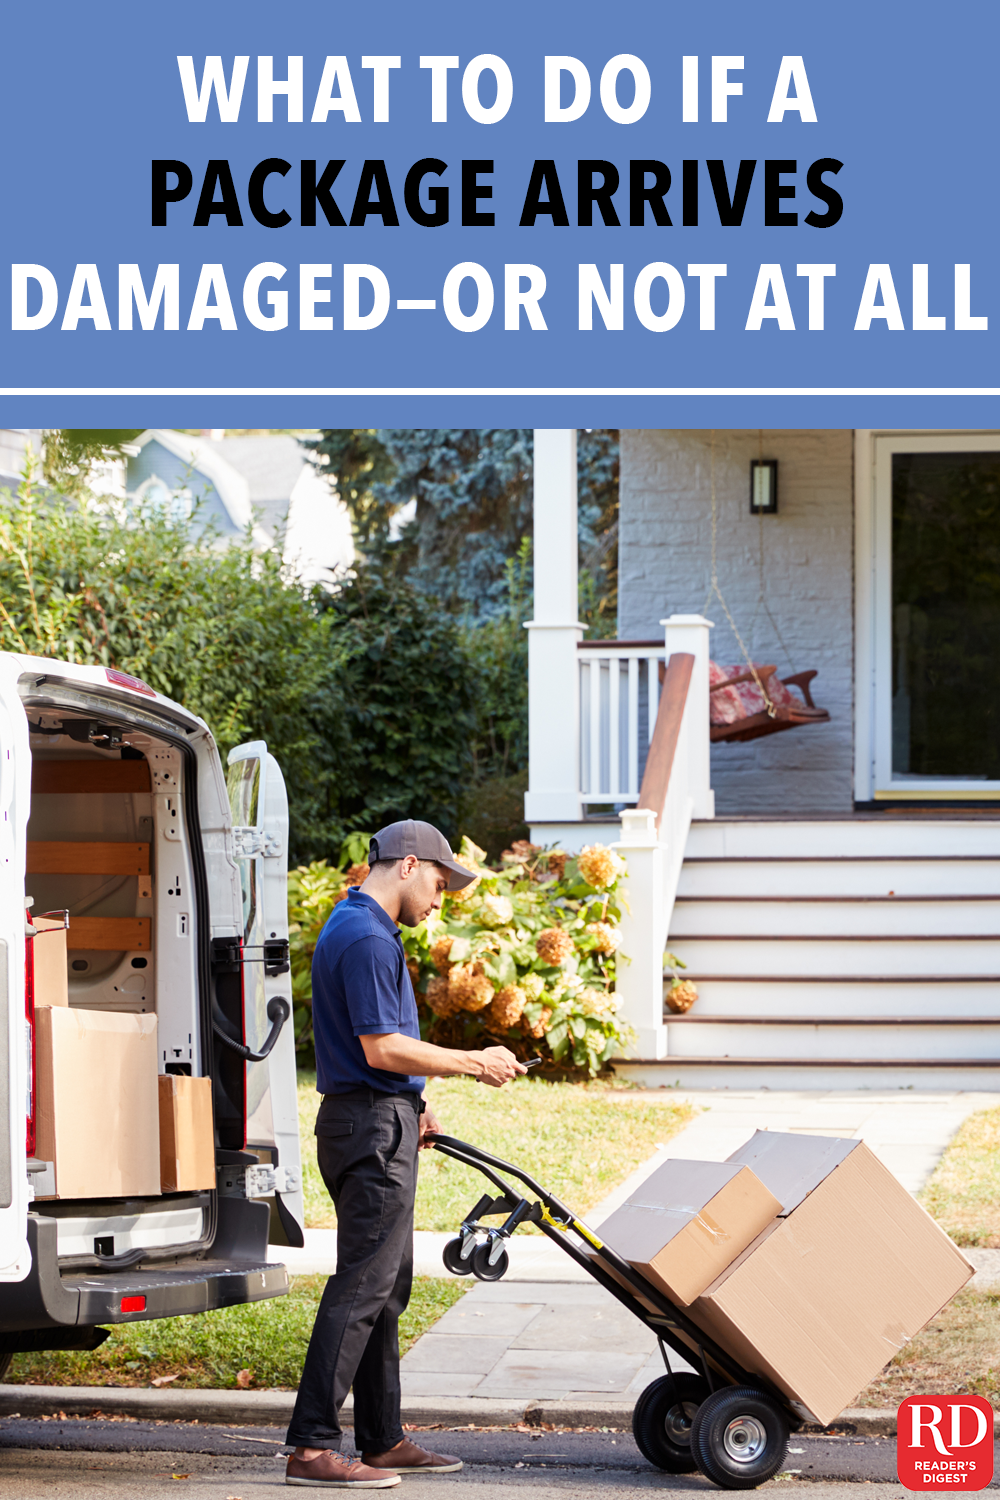 What to Do If a Package Arrives Damaged—or Not at All